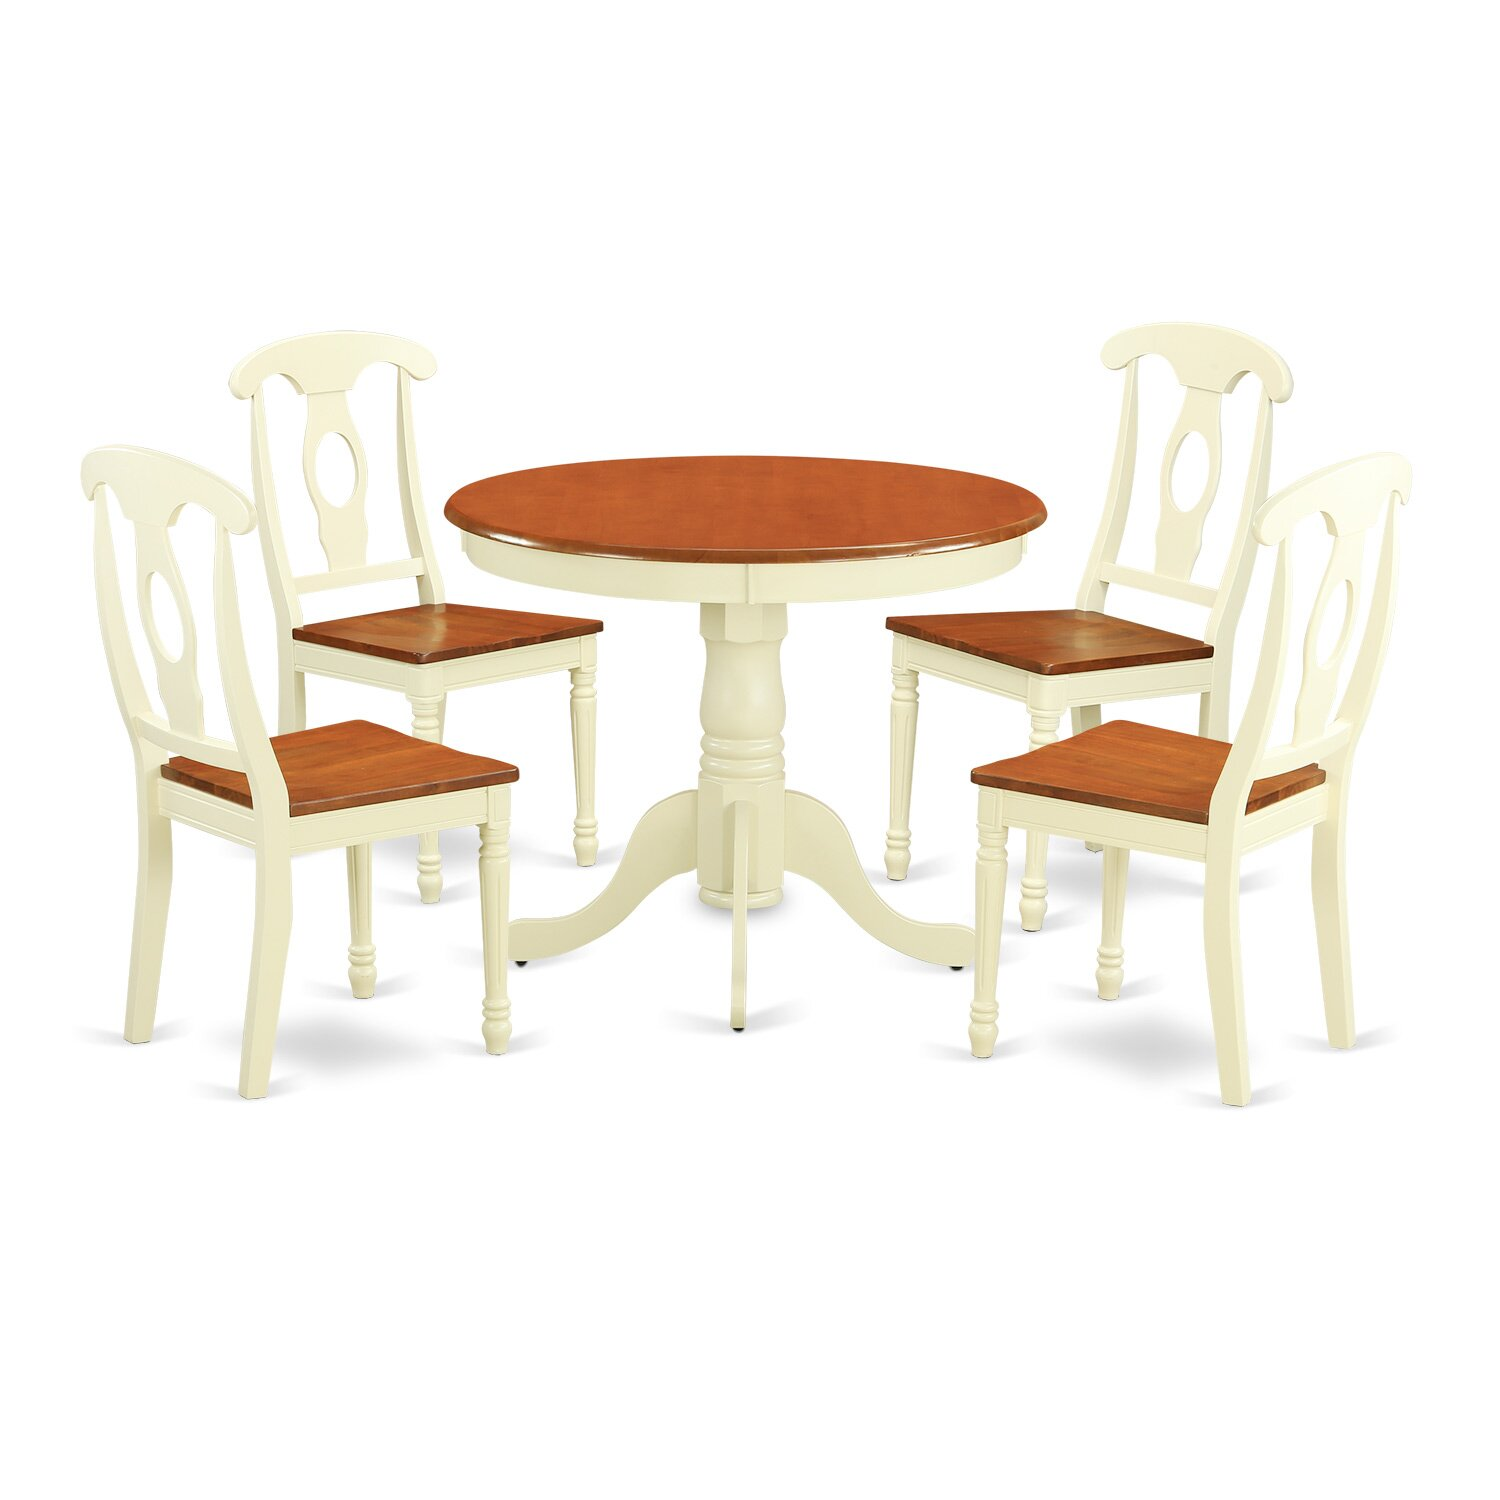 East west 5 piece dining set wayfair for Kitchen dining sets